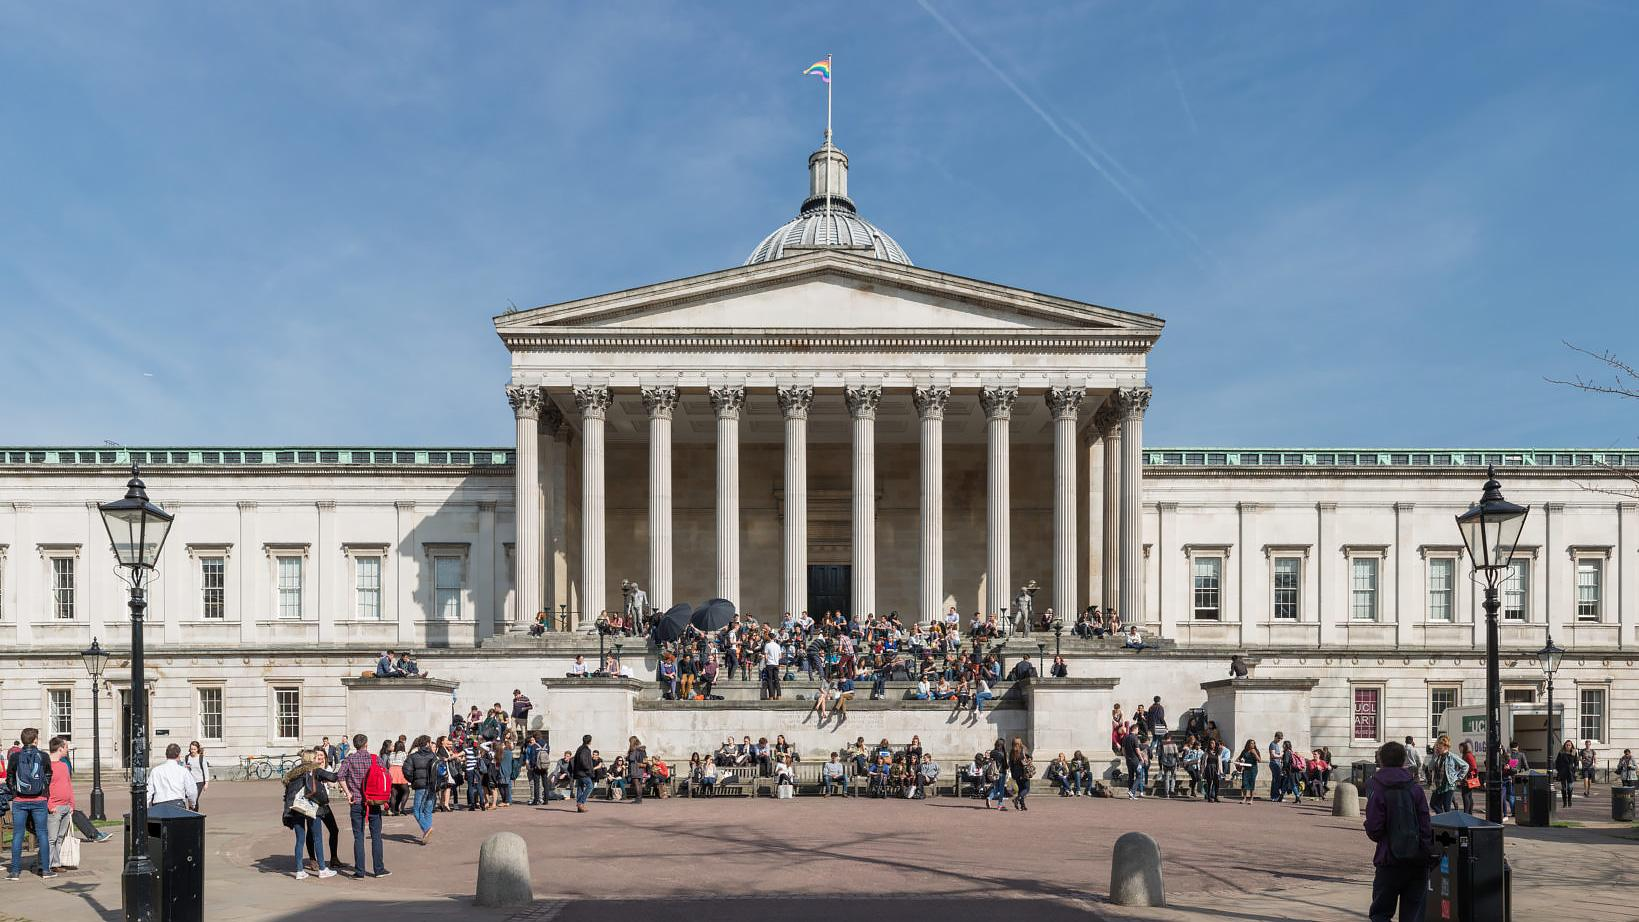 UCL - University College London